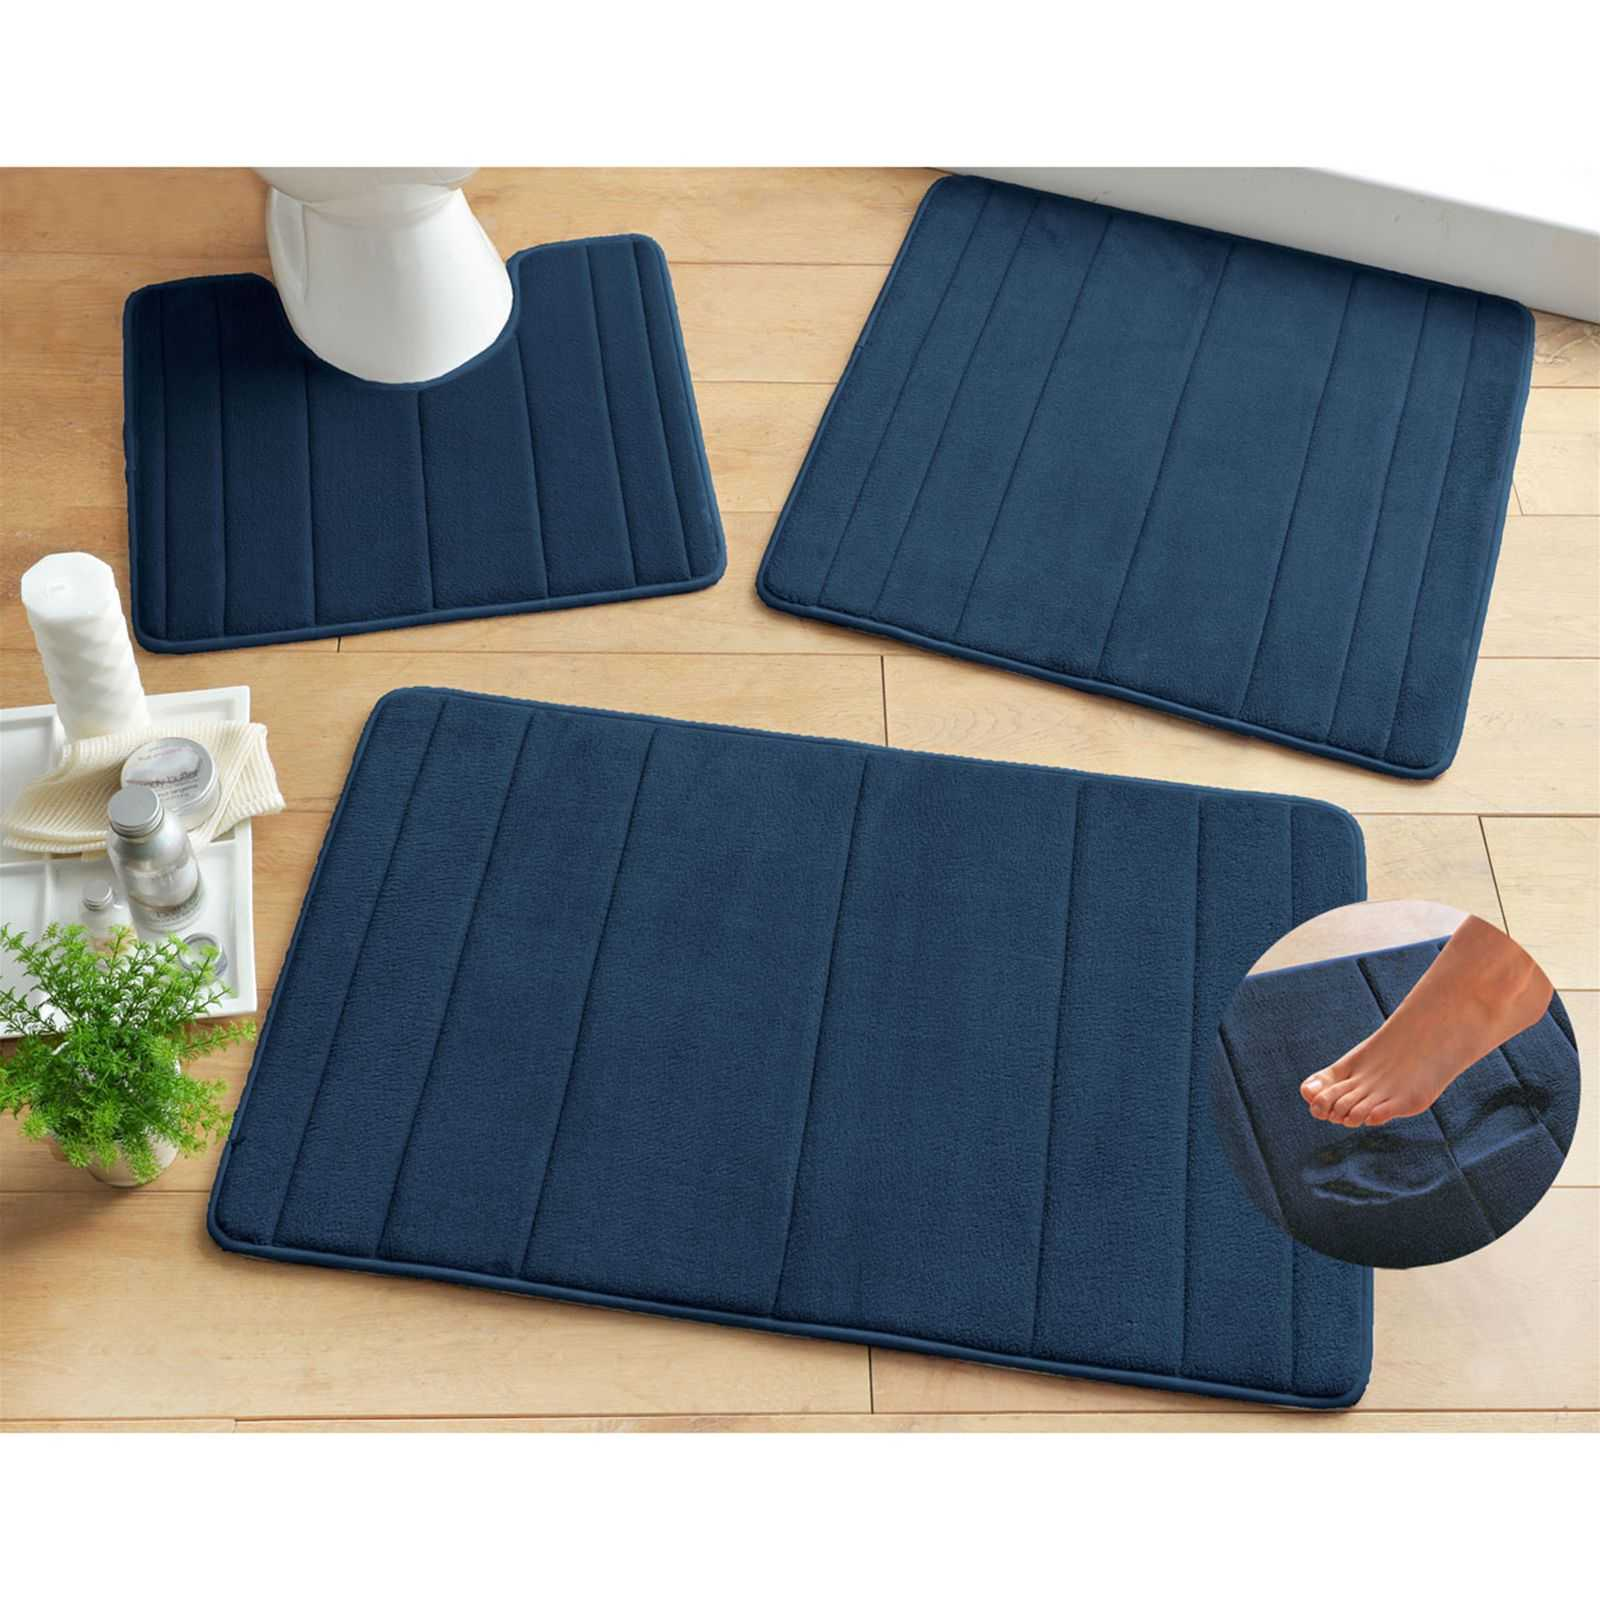 becquet tapis de bain 1200 g m bleu marine brandalley. Black Bedroom Furniture Sets. Home Design Ideas